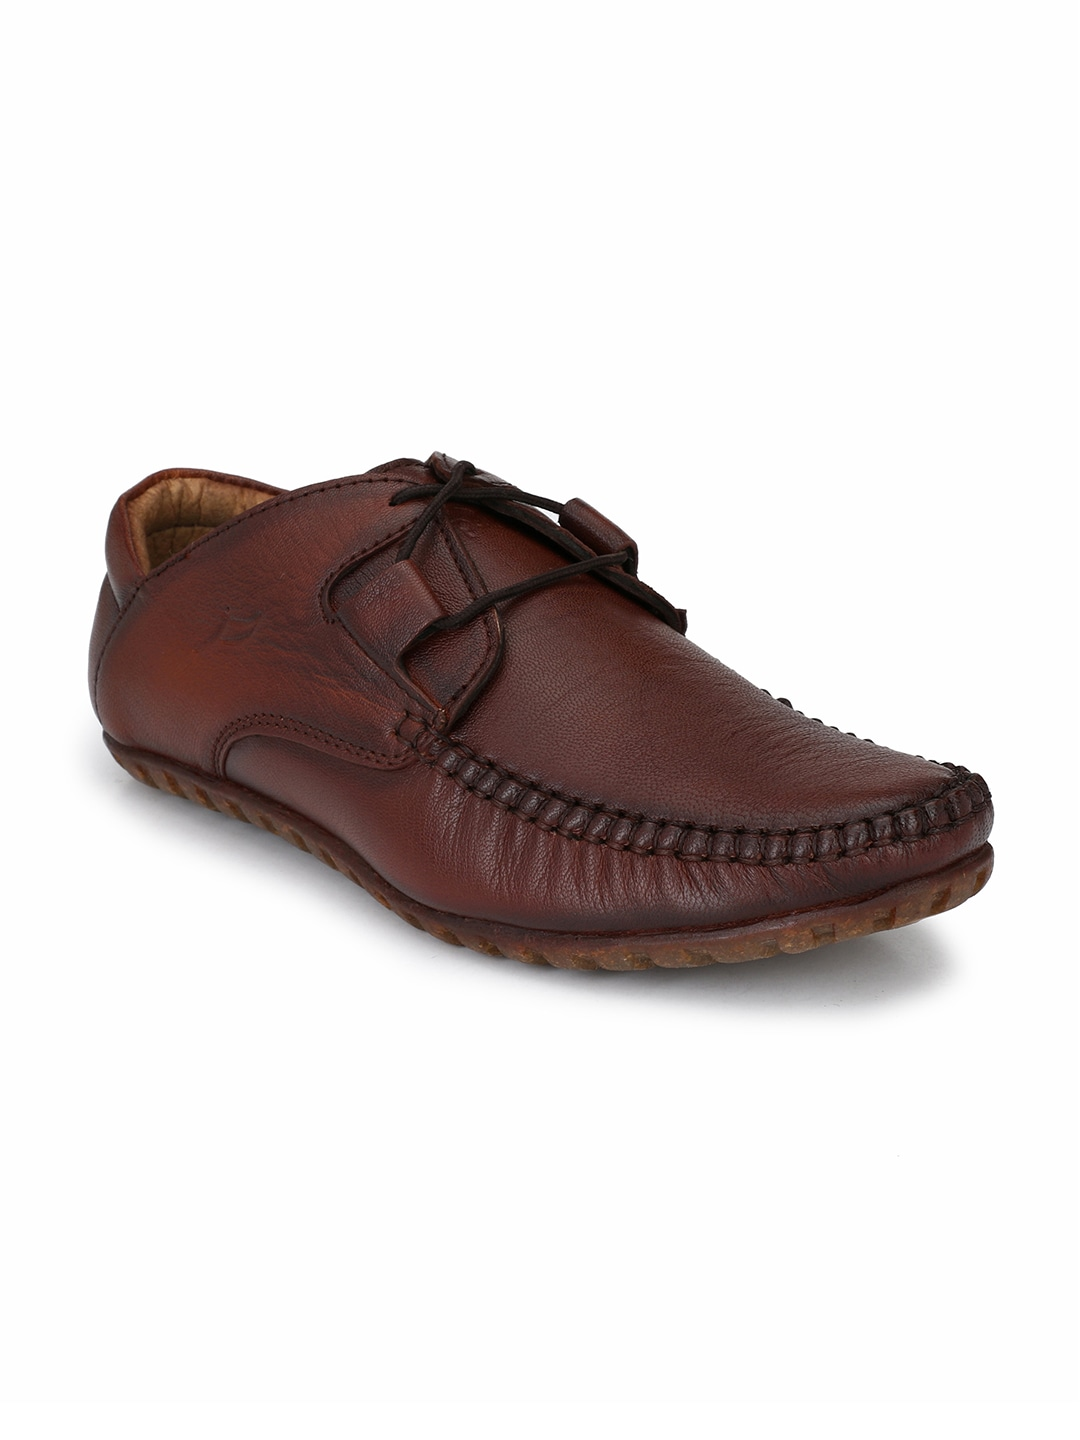 fdcdd2450d9 Men Footwear - Buy Mens Footwear   Shoes Online in India - Myntra